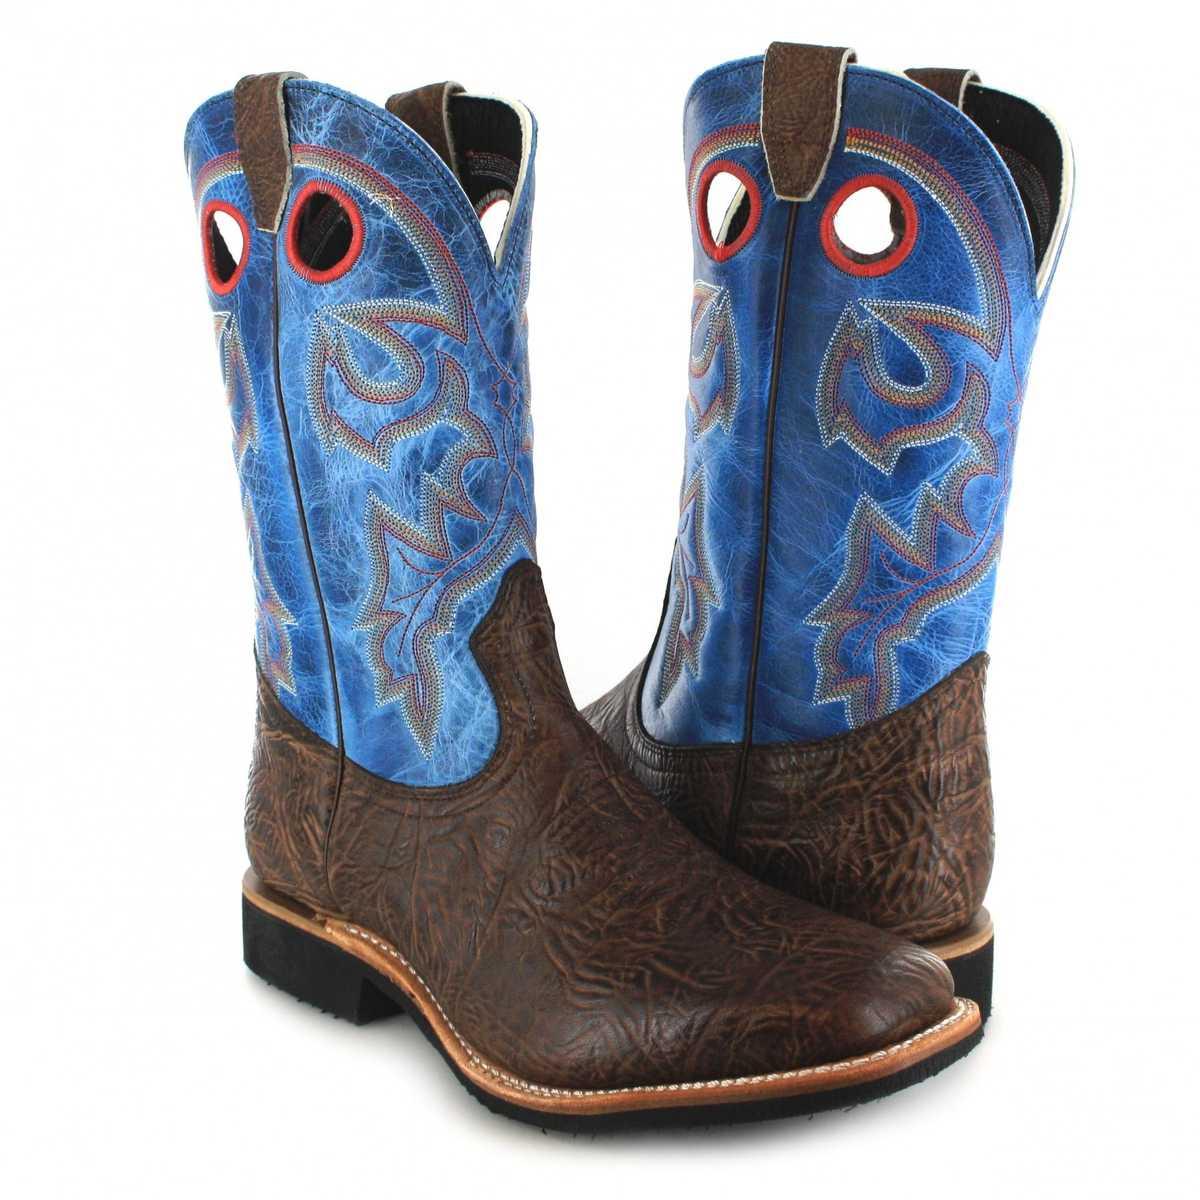 Boulet 5199 Winter Western riding boot with Thinsulate